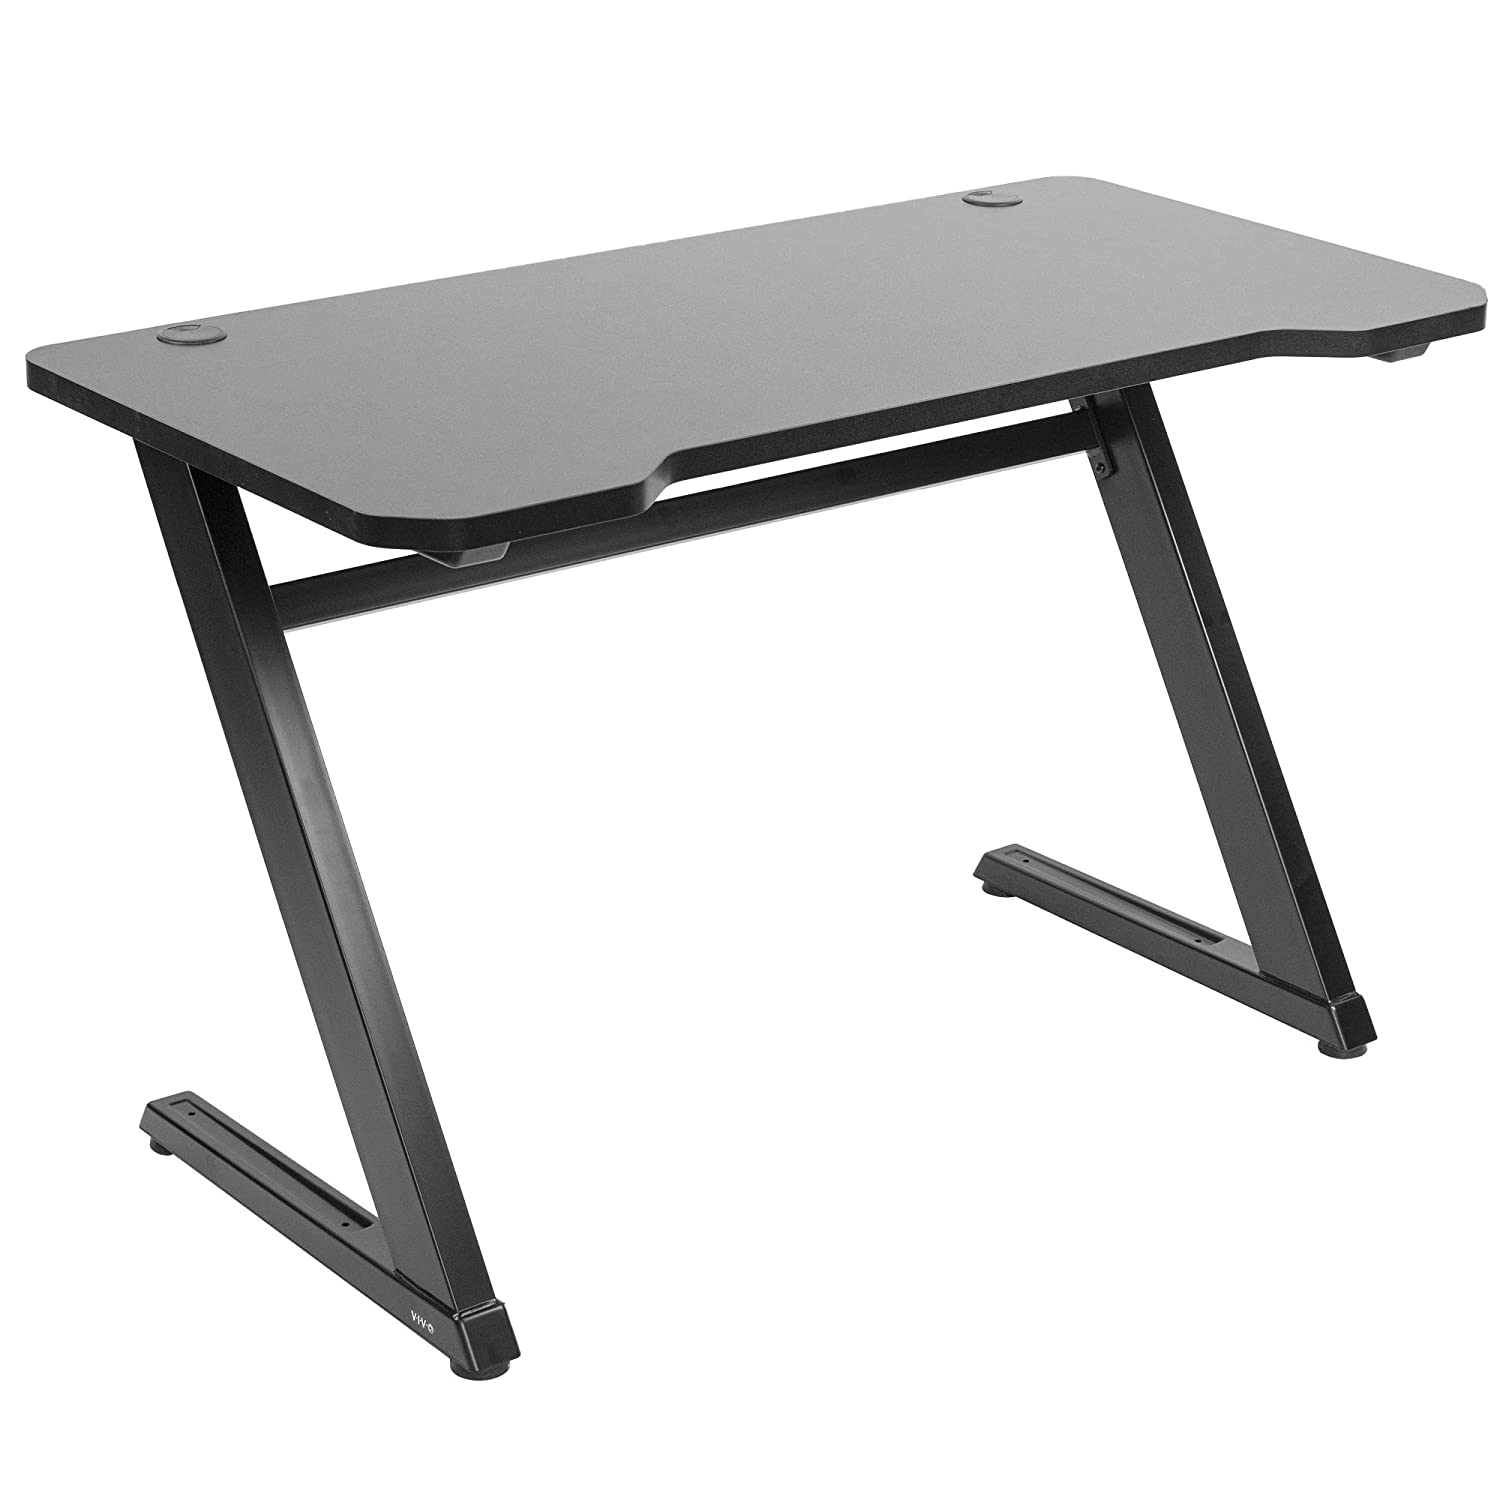 VIVO Black 47 inch Gaming Desk Table with Z-Shaped Frame Home Office Computer Workstation with Curved Tabletop and Steel Legs DESK-GM1ZB